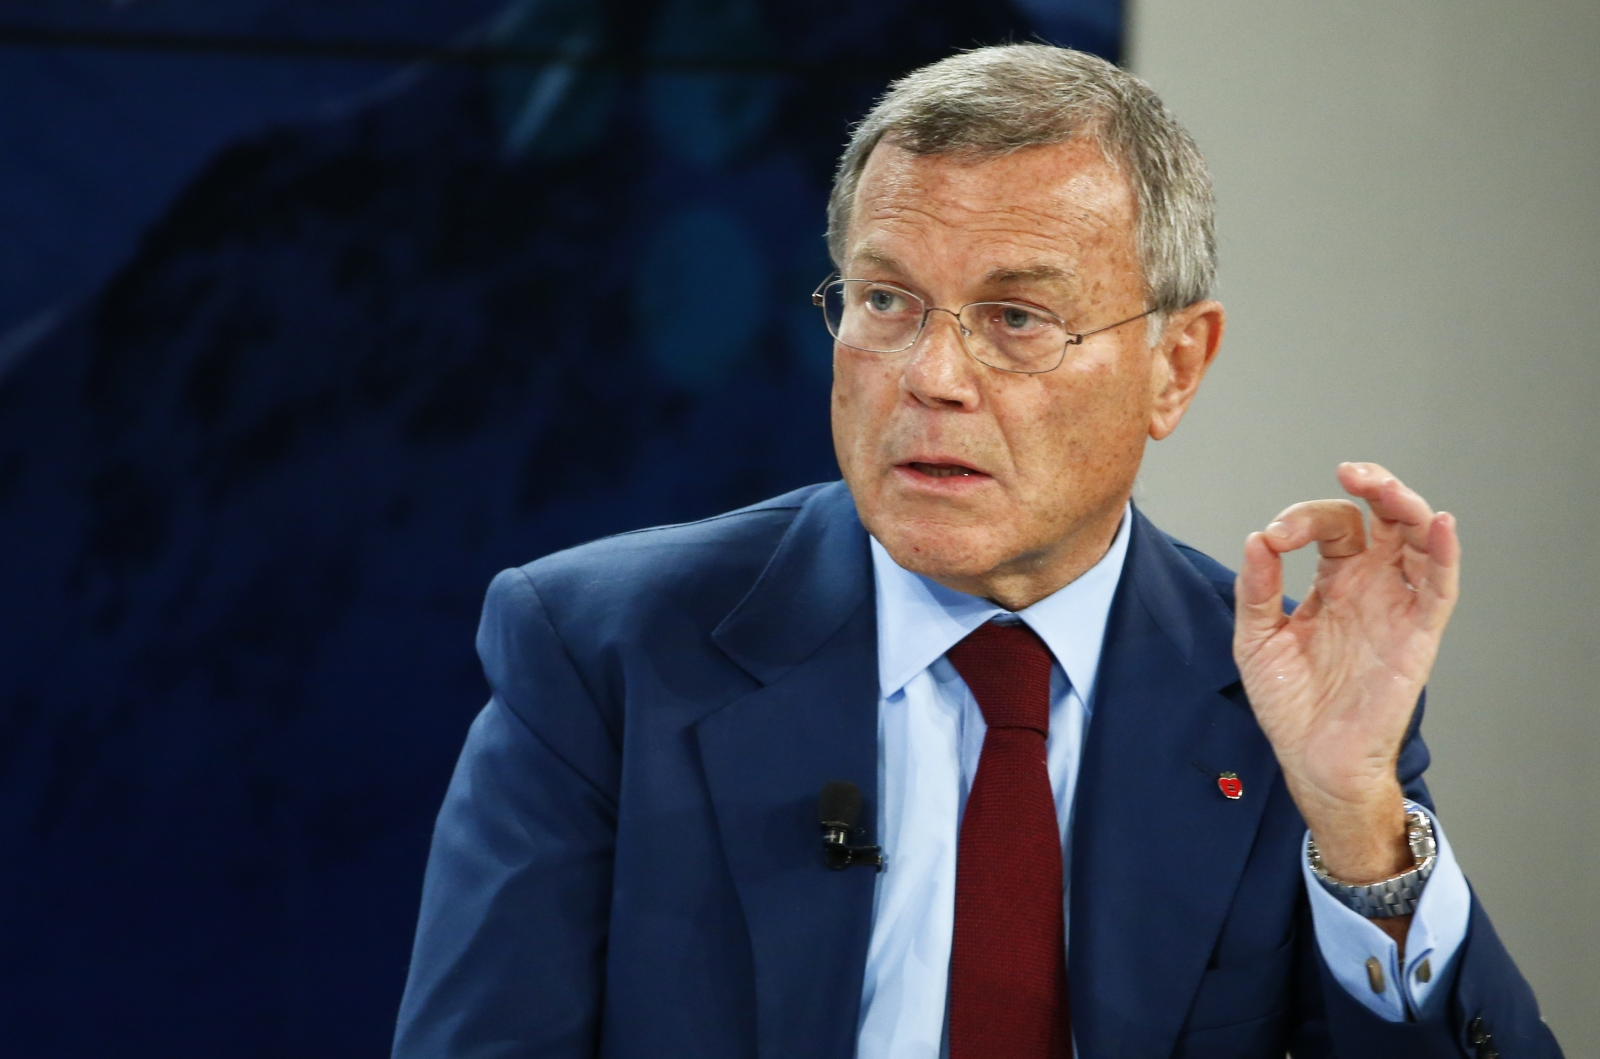 Sir Martin Sorrell, Chief Executive Officer of WPP, gestures during the session 'The BBC World Debate: A Richer World, but for Whom?' in the Swiss mountain resort of Davos January 23, 2015.